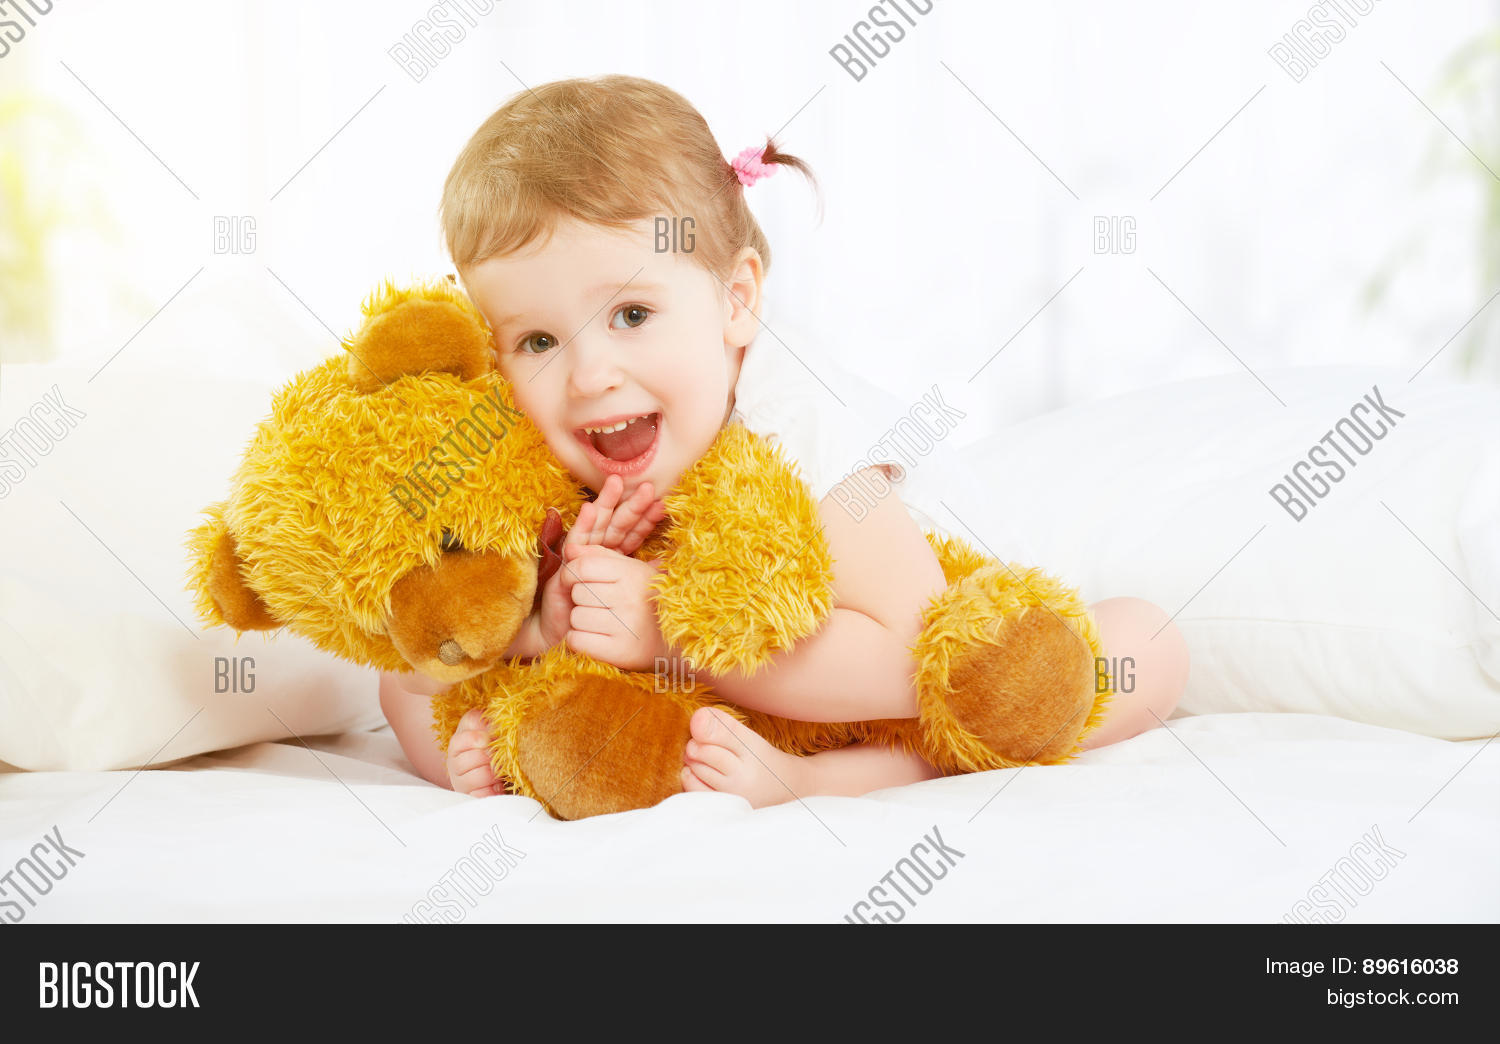 adorable,animal,baby,bear,beautiful,bed,bedding,bedroom,bedtime,blanket,caucasian,child,childhood,comfort,comfortable,cute,cute girl,daughter,dream,face,female,girl,girls in bed,girls night out,happy,health,home,hug,innocence,kid,kids bedroom,little,lovely,morning,night,pajama,people,person,portrait,preschooler,pretty,relax,relaxation,rest,resting,sleep,smile,stuffed,sweet,teddy,teddy bear,toddler,toy,white,young